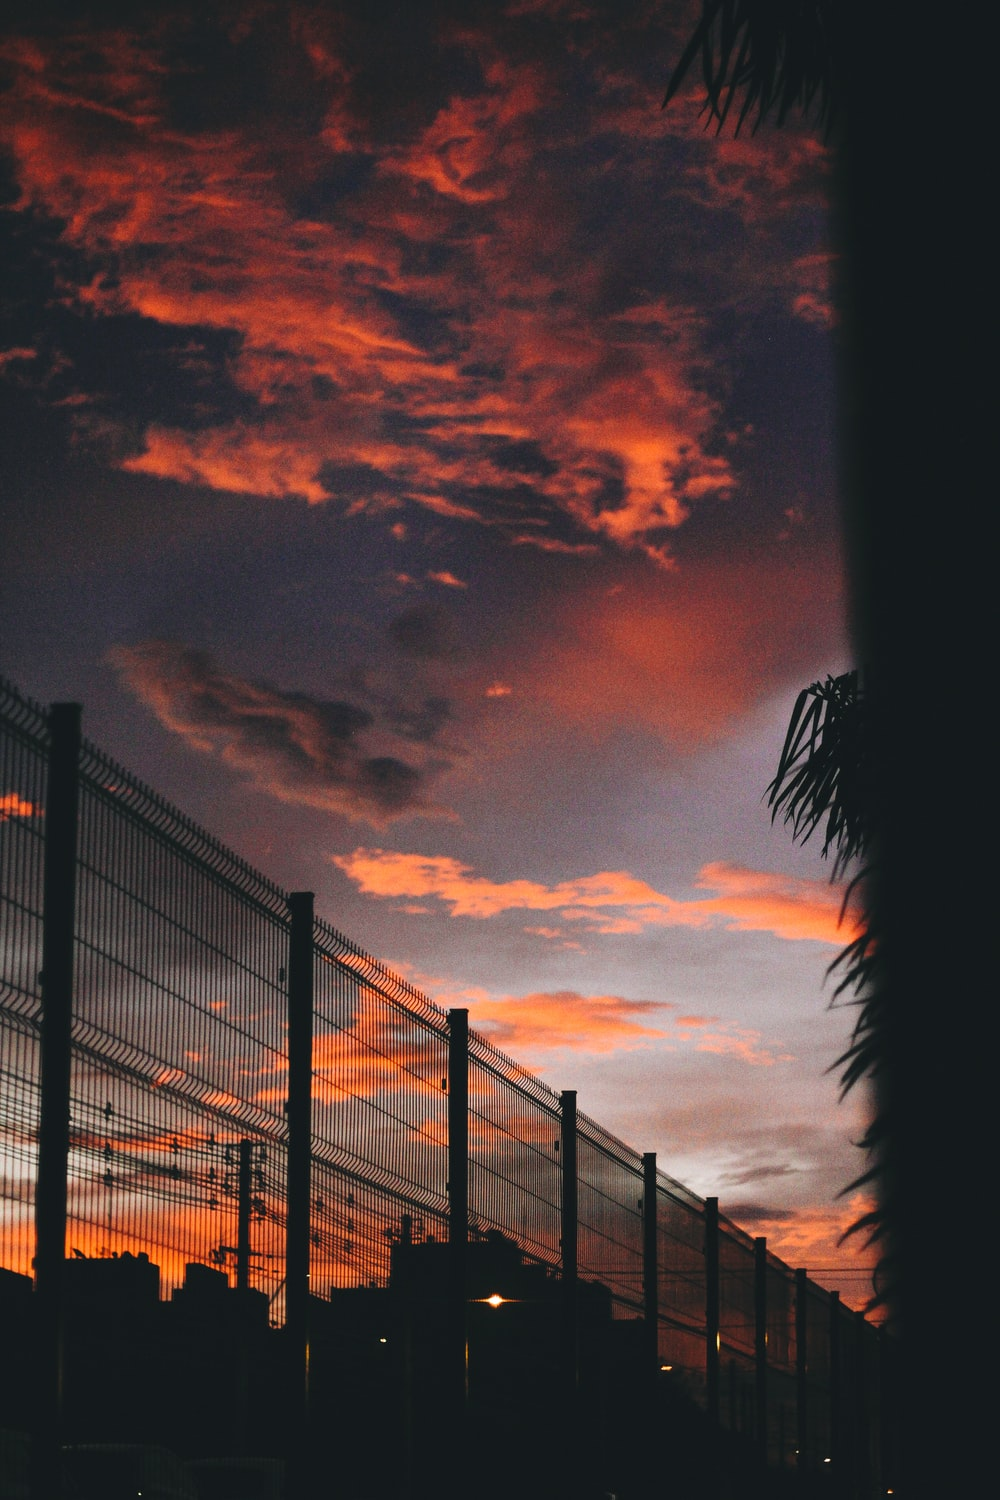 silhouette of wall grille under golden sky